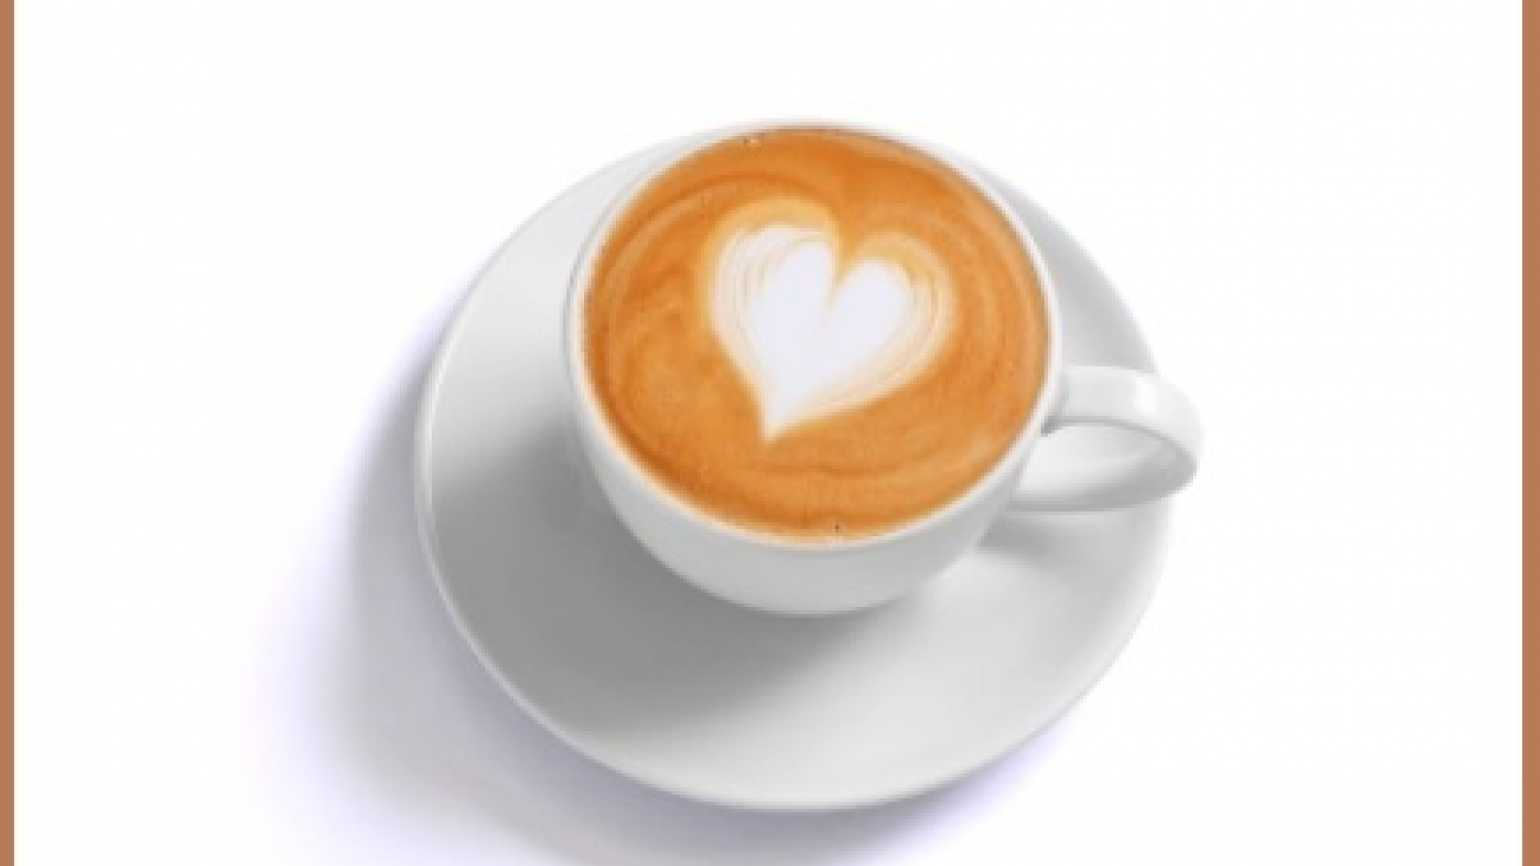 Coffee cup with a heart-shape made from cream